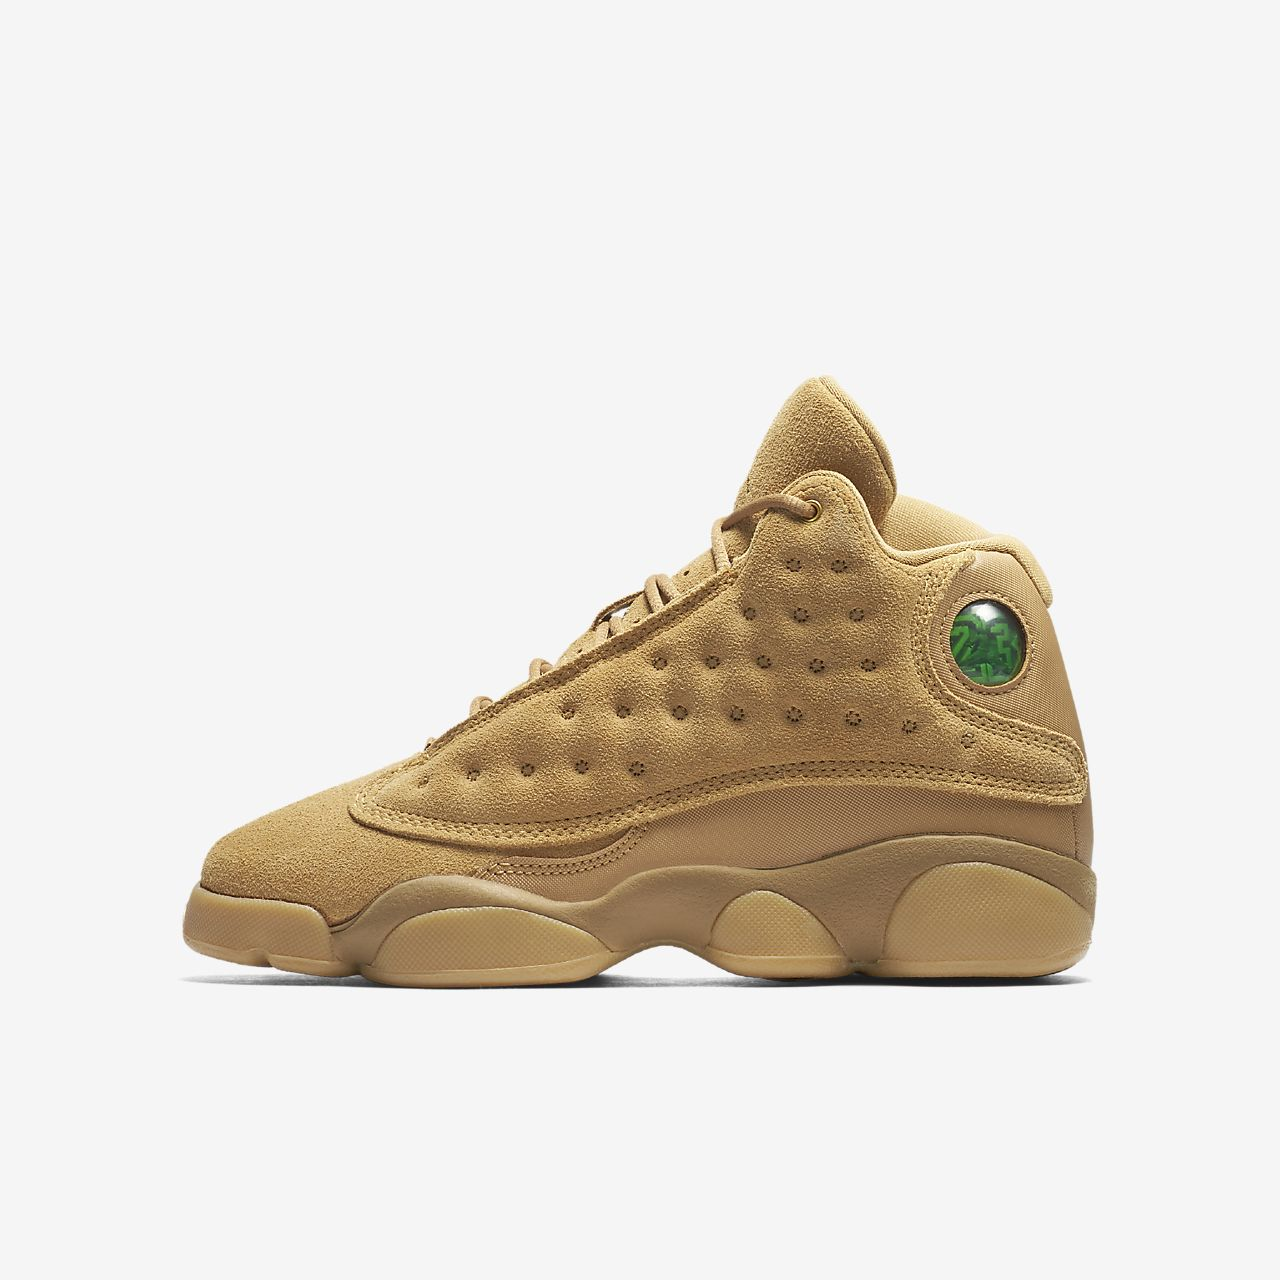 Air Jordan 13 Retro Older Kids Shoe